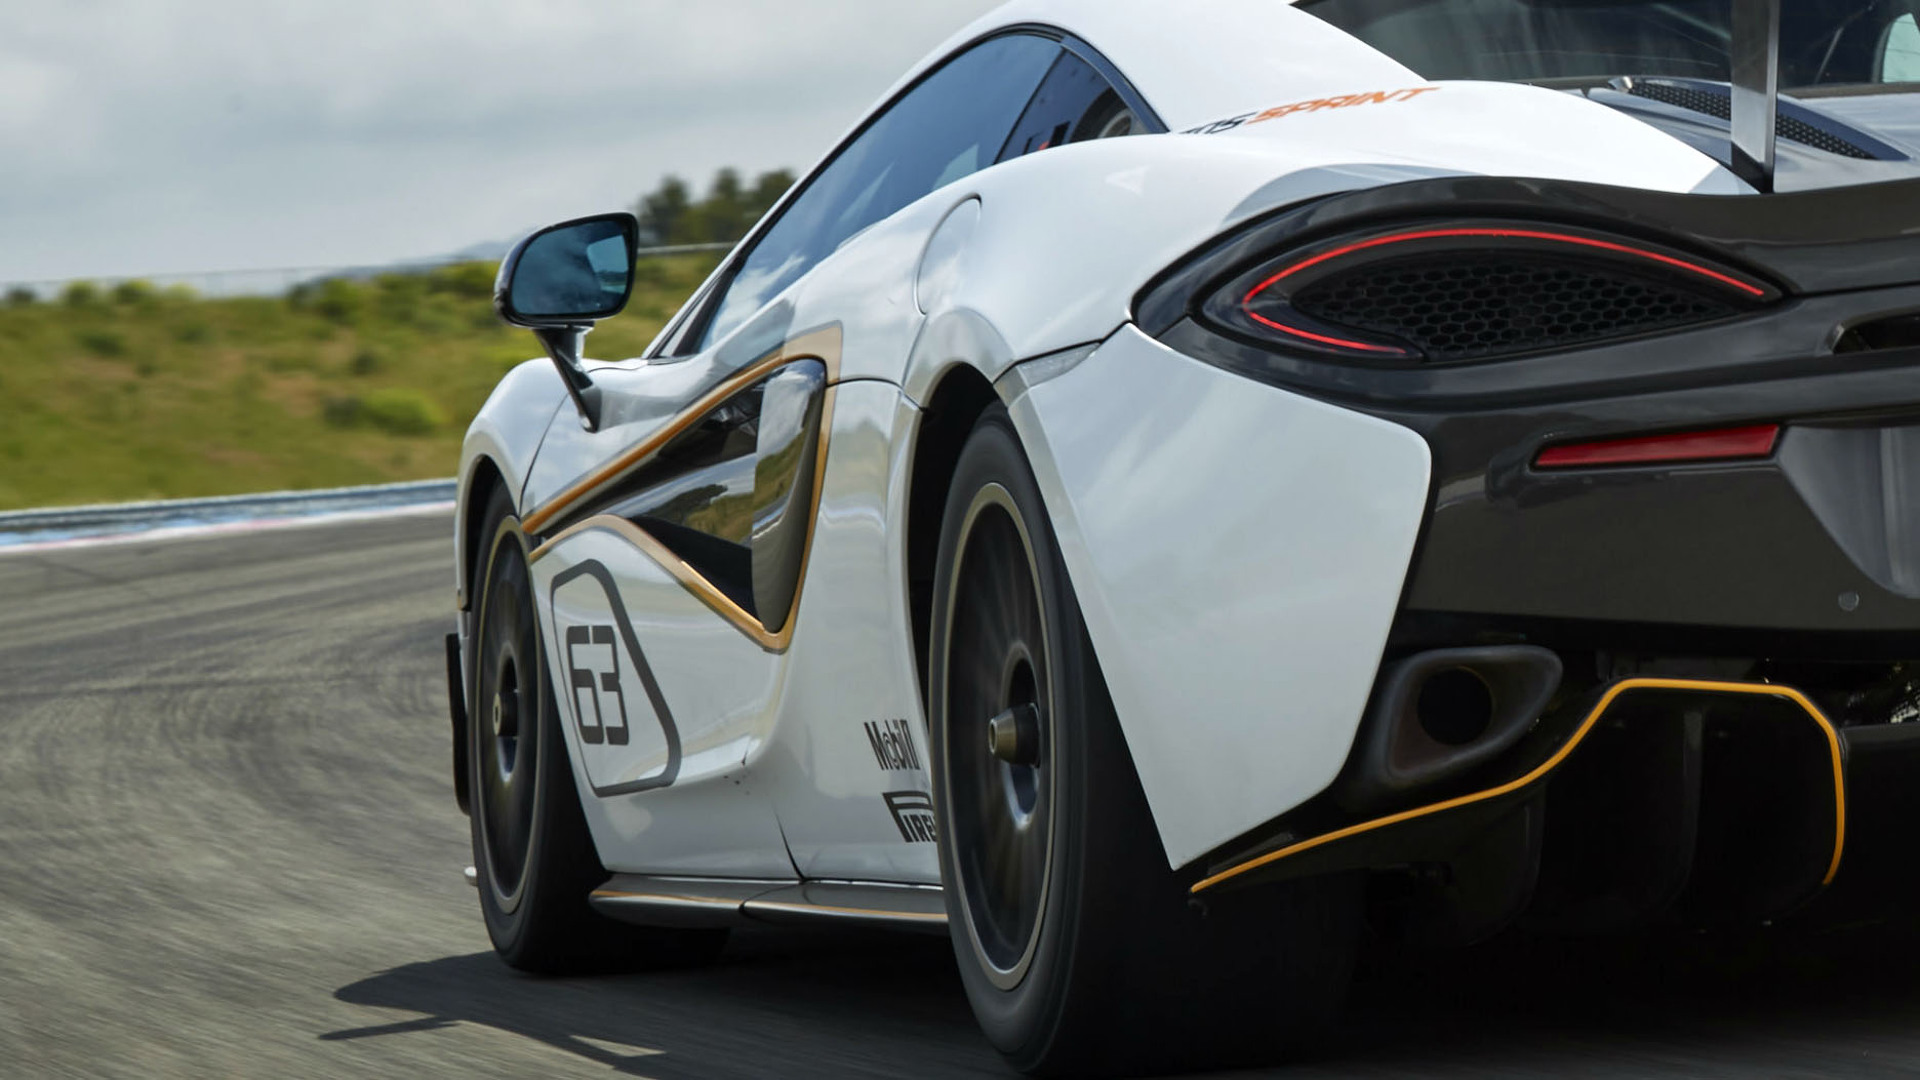 Mclaren is planning to introduce yet another special supercar this